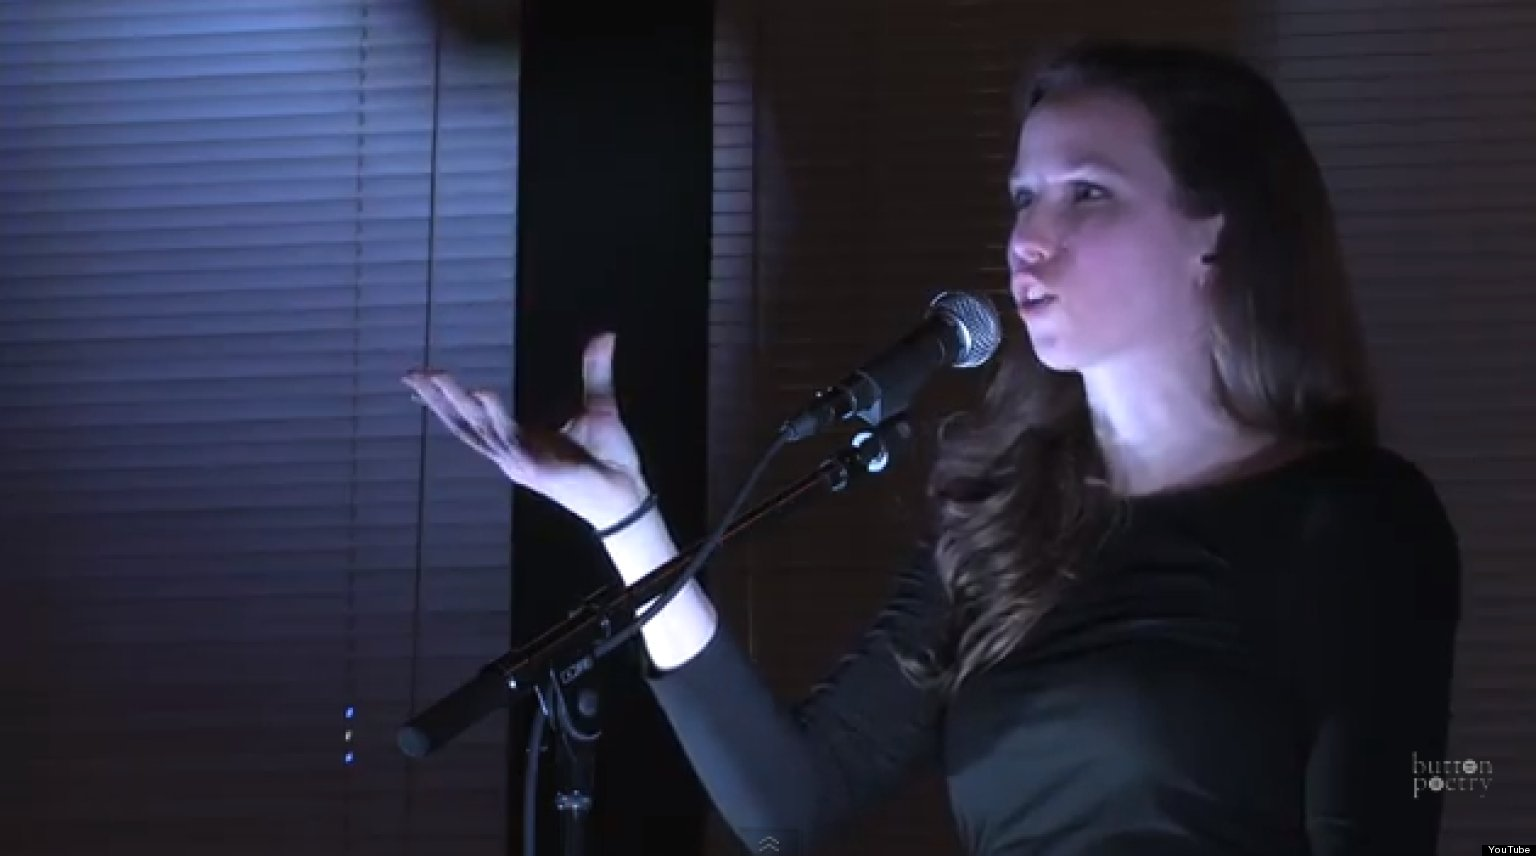 WATCH: Poet Slams Michele Bachmann With Incredible Performance